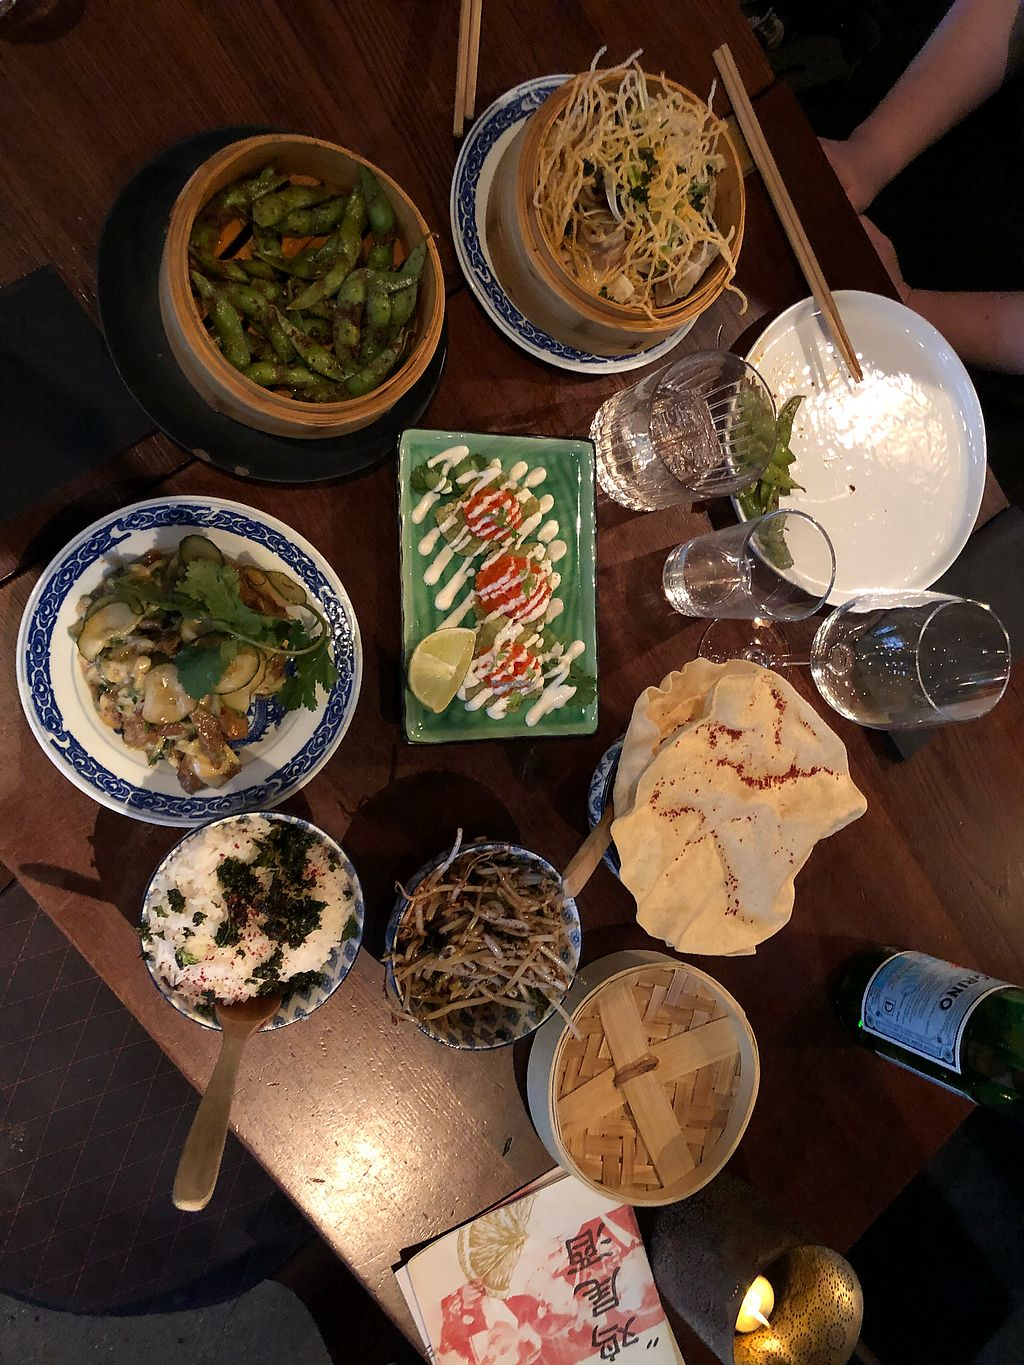 """Photo of Ling Long  by <a href=""""/members/profile/raiu"""">raiu</a> <br/>So many vegan options! <br/> April 16, 2018  - <a href='/contact/abuse/image/87671/386714'>Report</a>"""